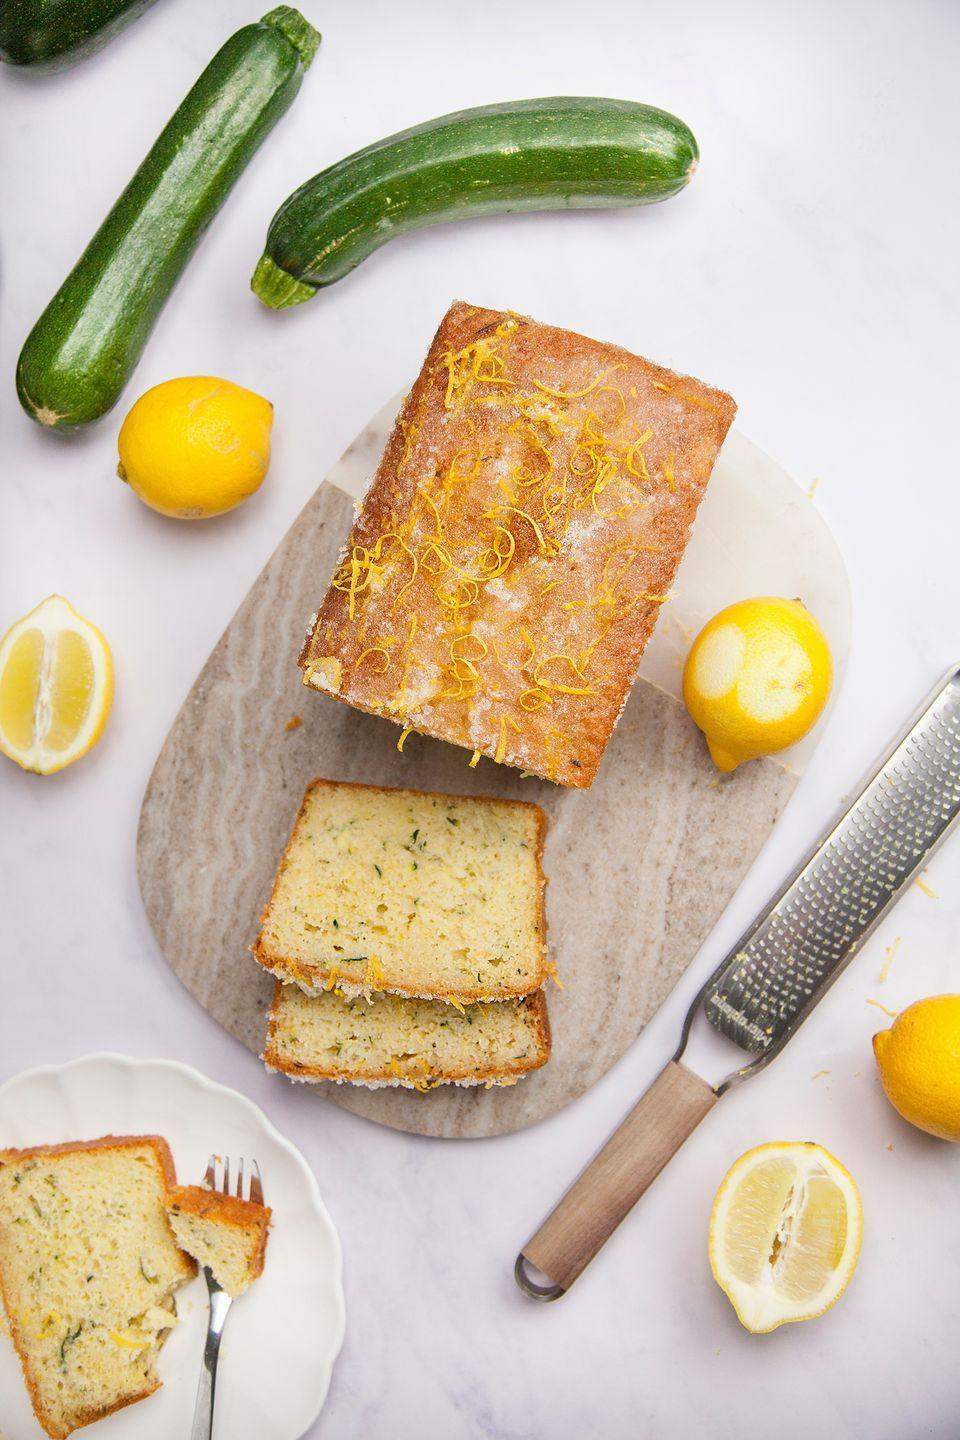 """<p>We've transformed the humble lemon drizzle, one of the nation's favourite bakes, into a gorgeous courgette-filled cake. Yep, courgette gives a bake lovely moisture - and you're sure to love this.</p><p><strong>Recipe: <a href=""""https://www.goodhousekeeping.com/uk/food/recipes/a25915707/courgette-lemon-drizzle-cake/#"""" rel=""""nofollow noopener"""" target=""""_blank"""" data-ylk=""""slk:Courgette Lemon Drizzle Cake"""" class=""""link rapid-noclick-resp"""">Courgette Lemon Drizzle Cake</a></strong></p>"""